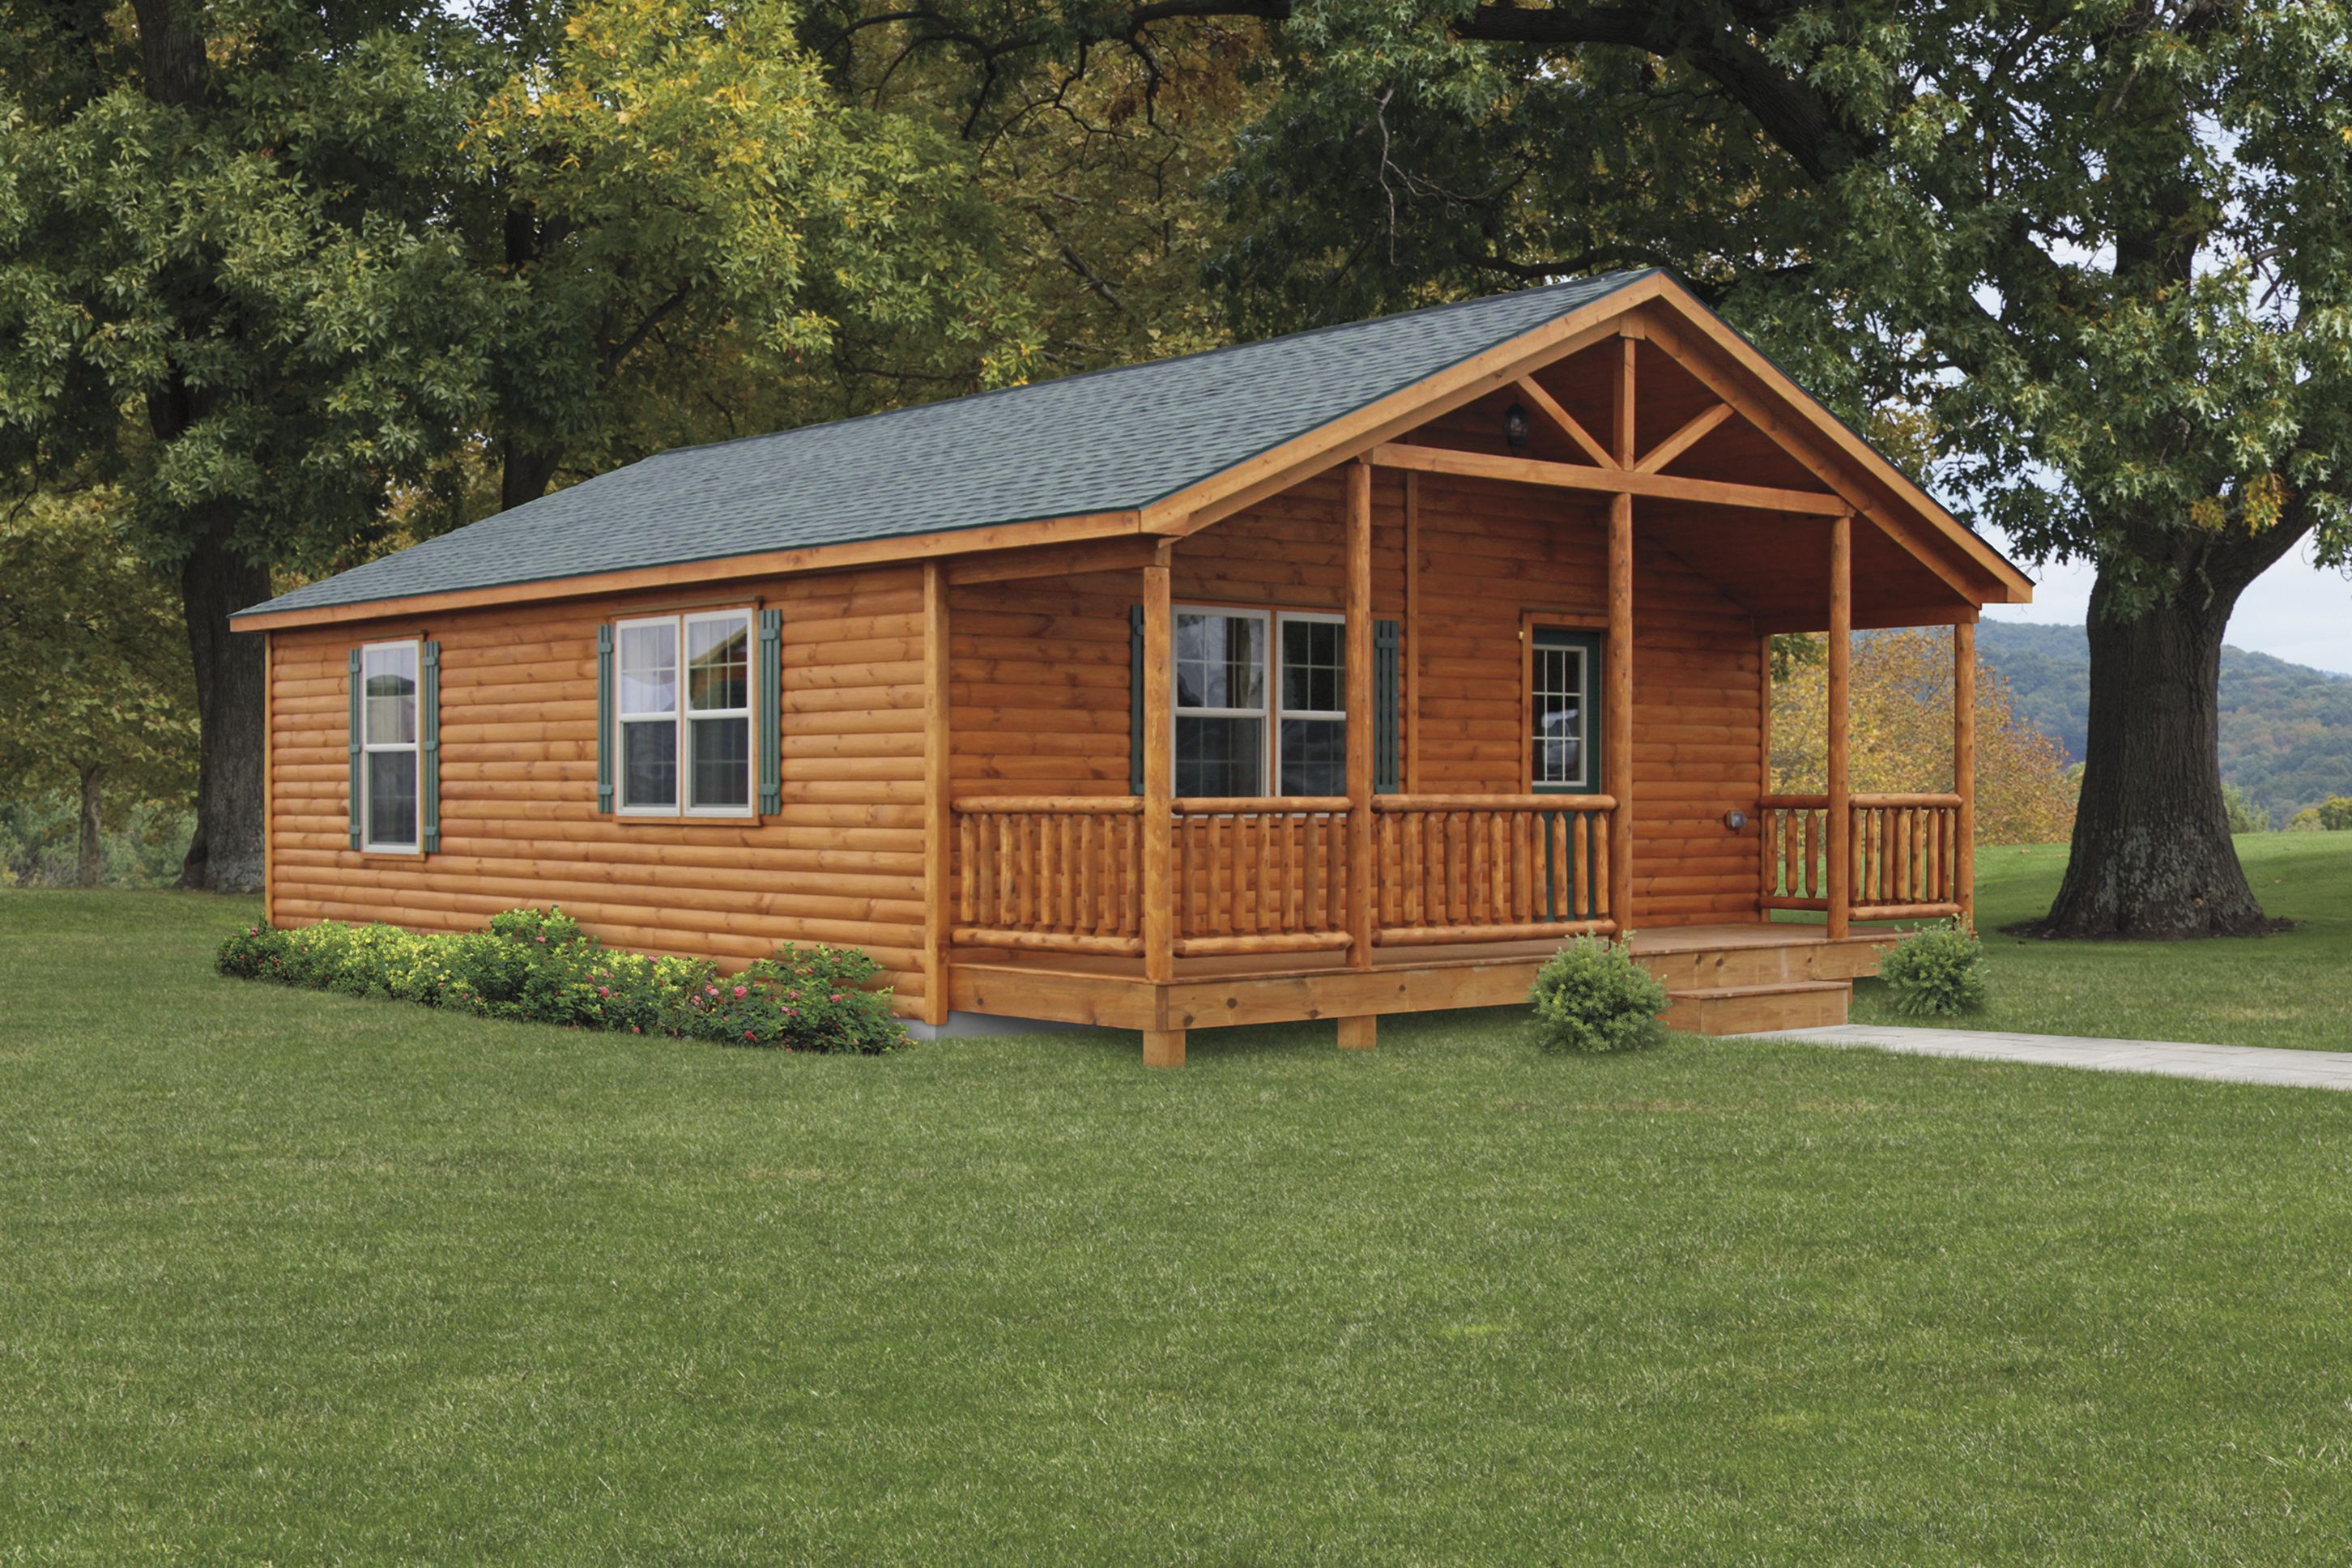 original to the cozy cabin company the double module settler is